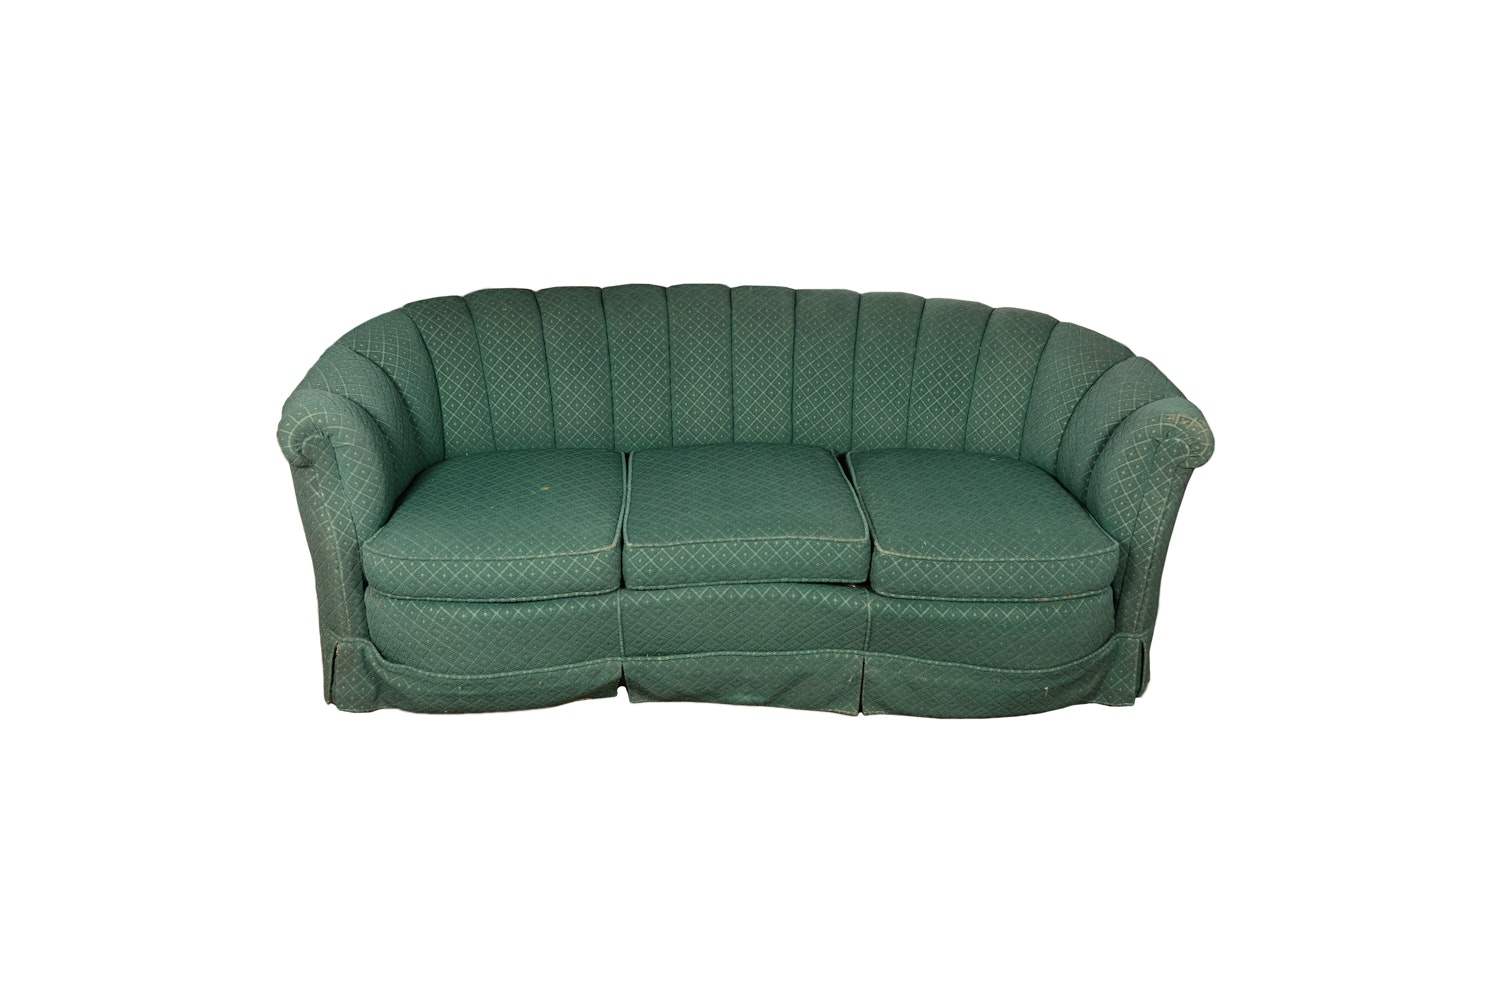 Channel Back Cabriole Sofa